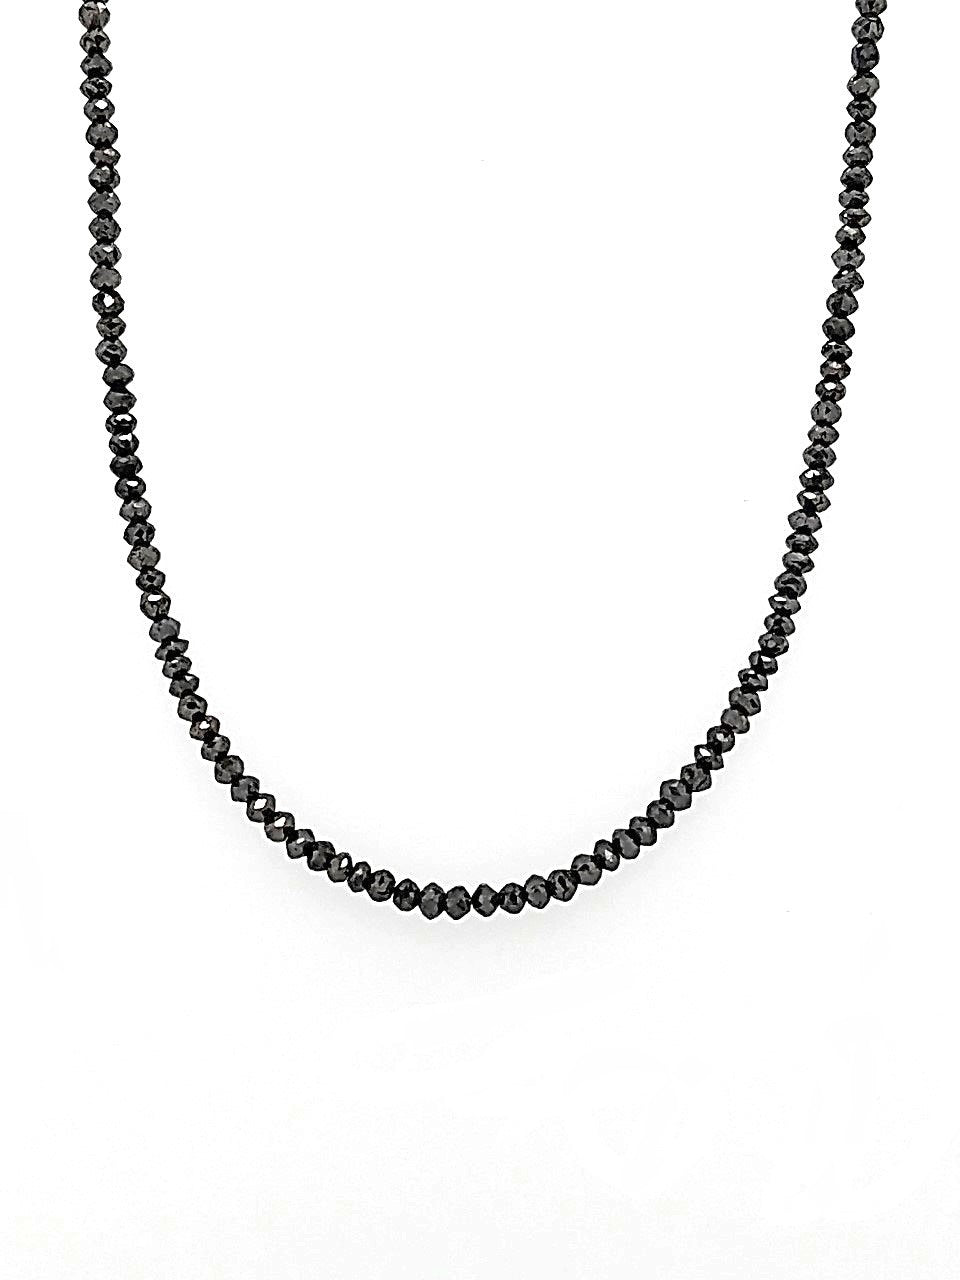 18 inch Black Diamond 19 ct Necklace with 14k White Gold Clasp